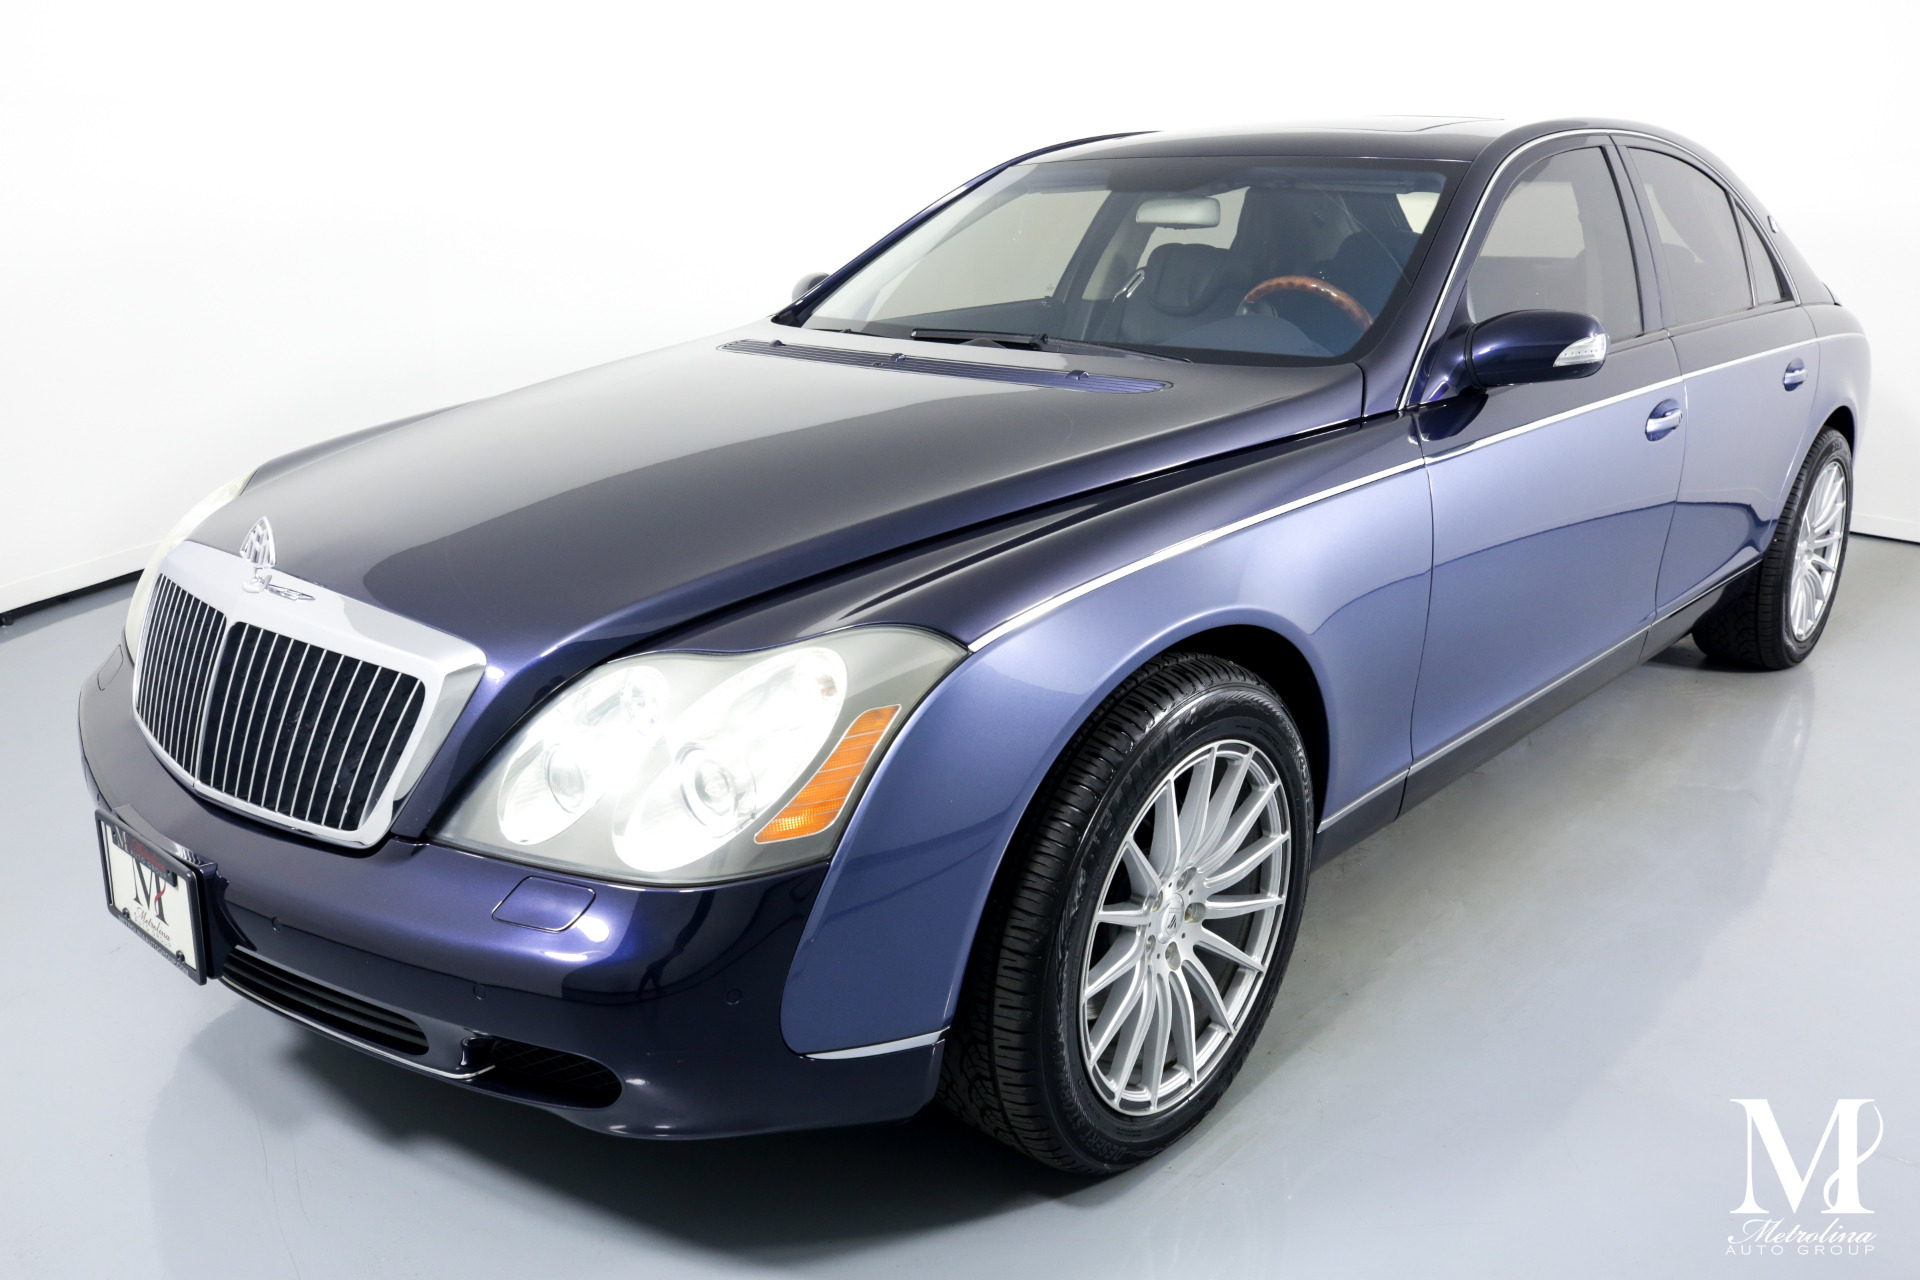 Used 2004 Maybach 57 for sale Sold at Metrolina Auto Group in Charlotte NC 28217 - 4